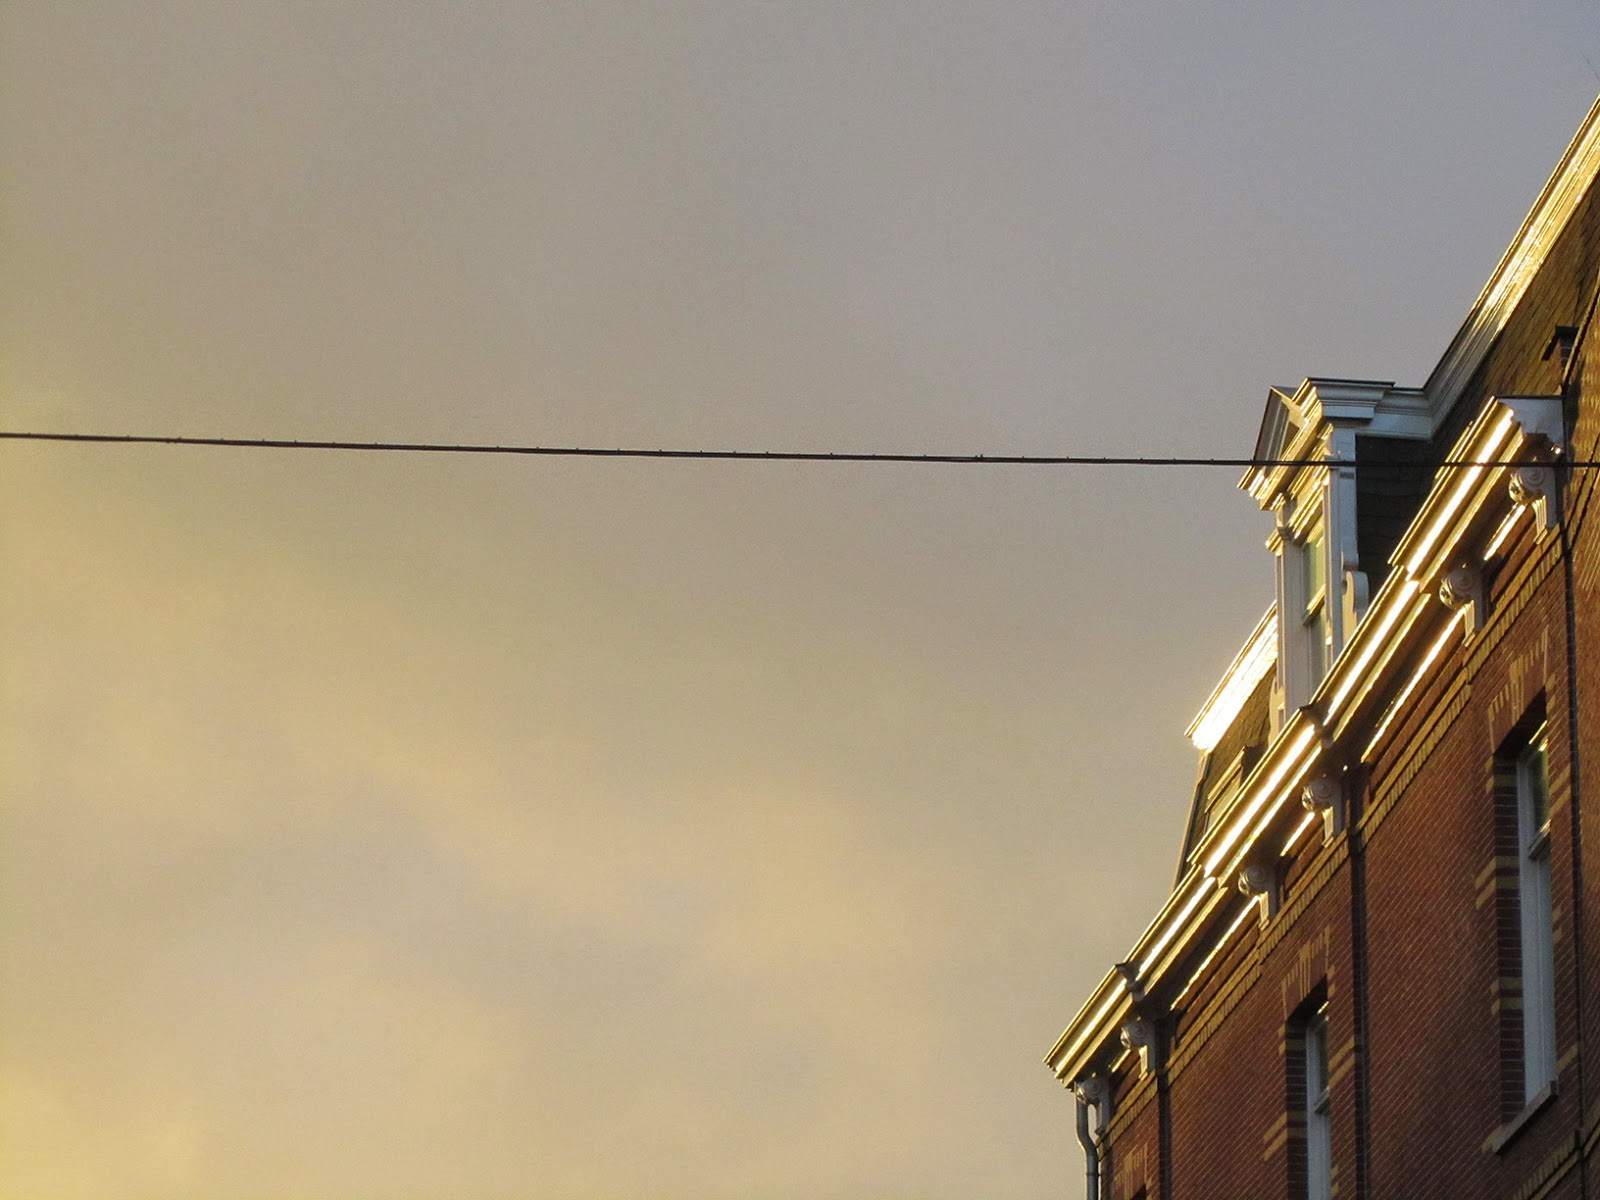 eery light with house and cable